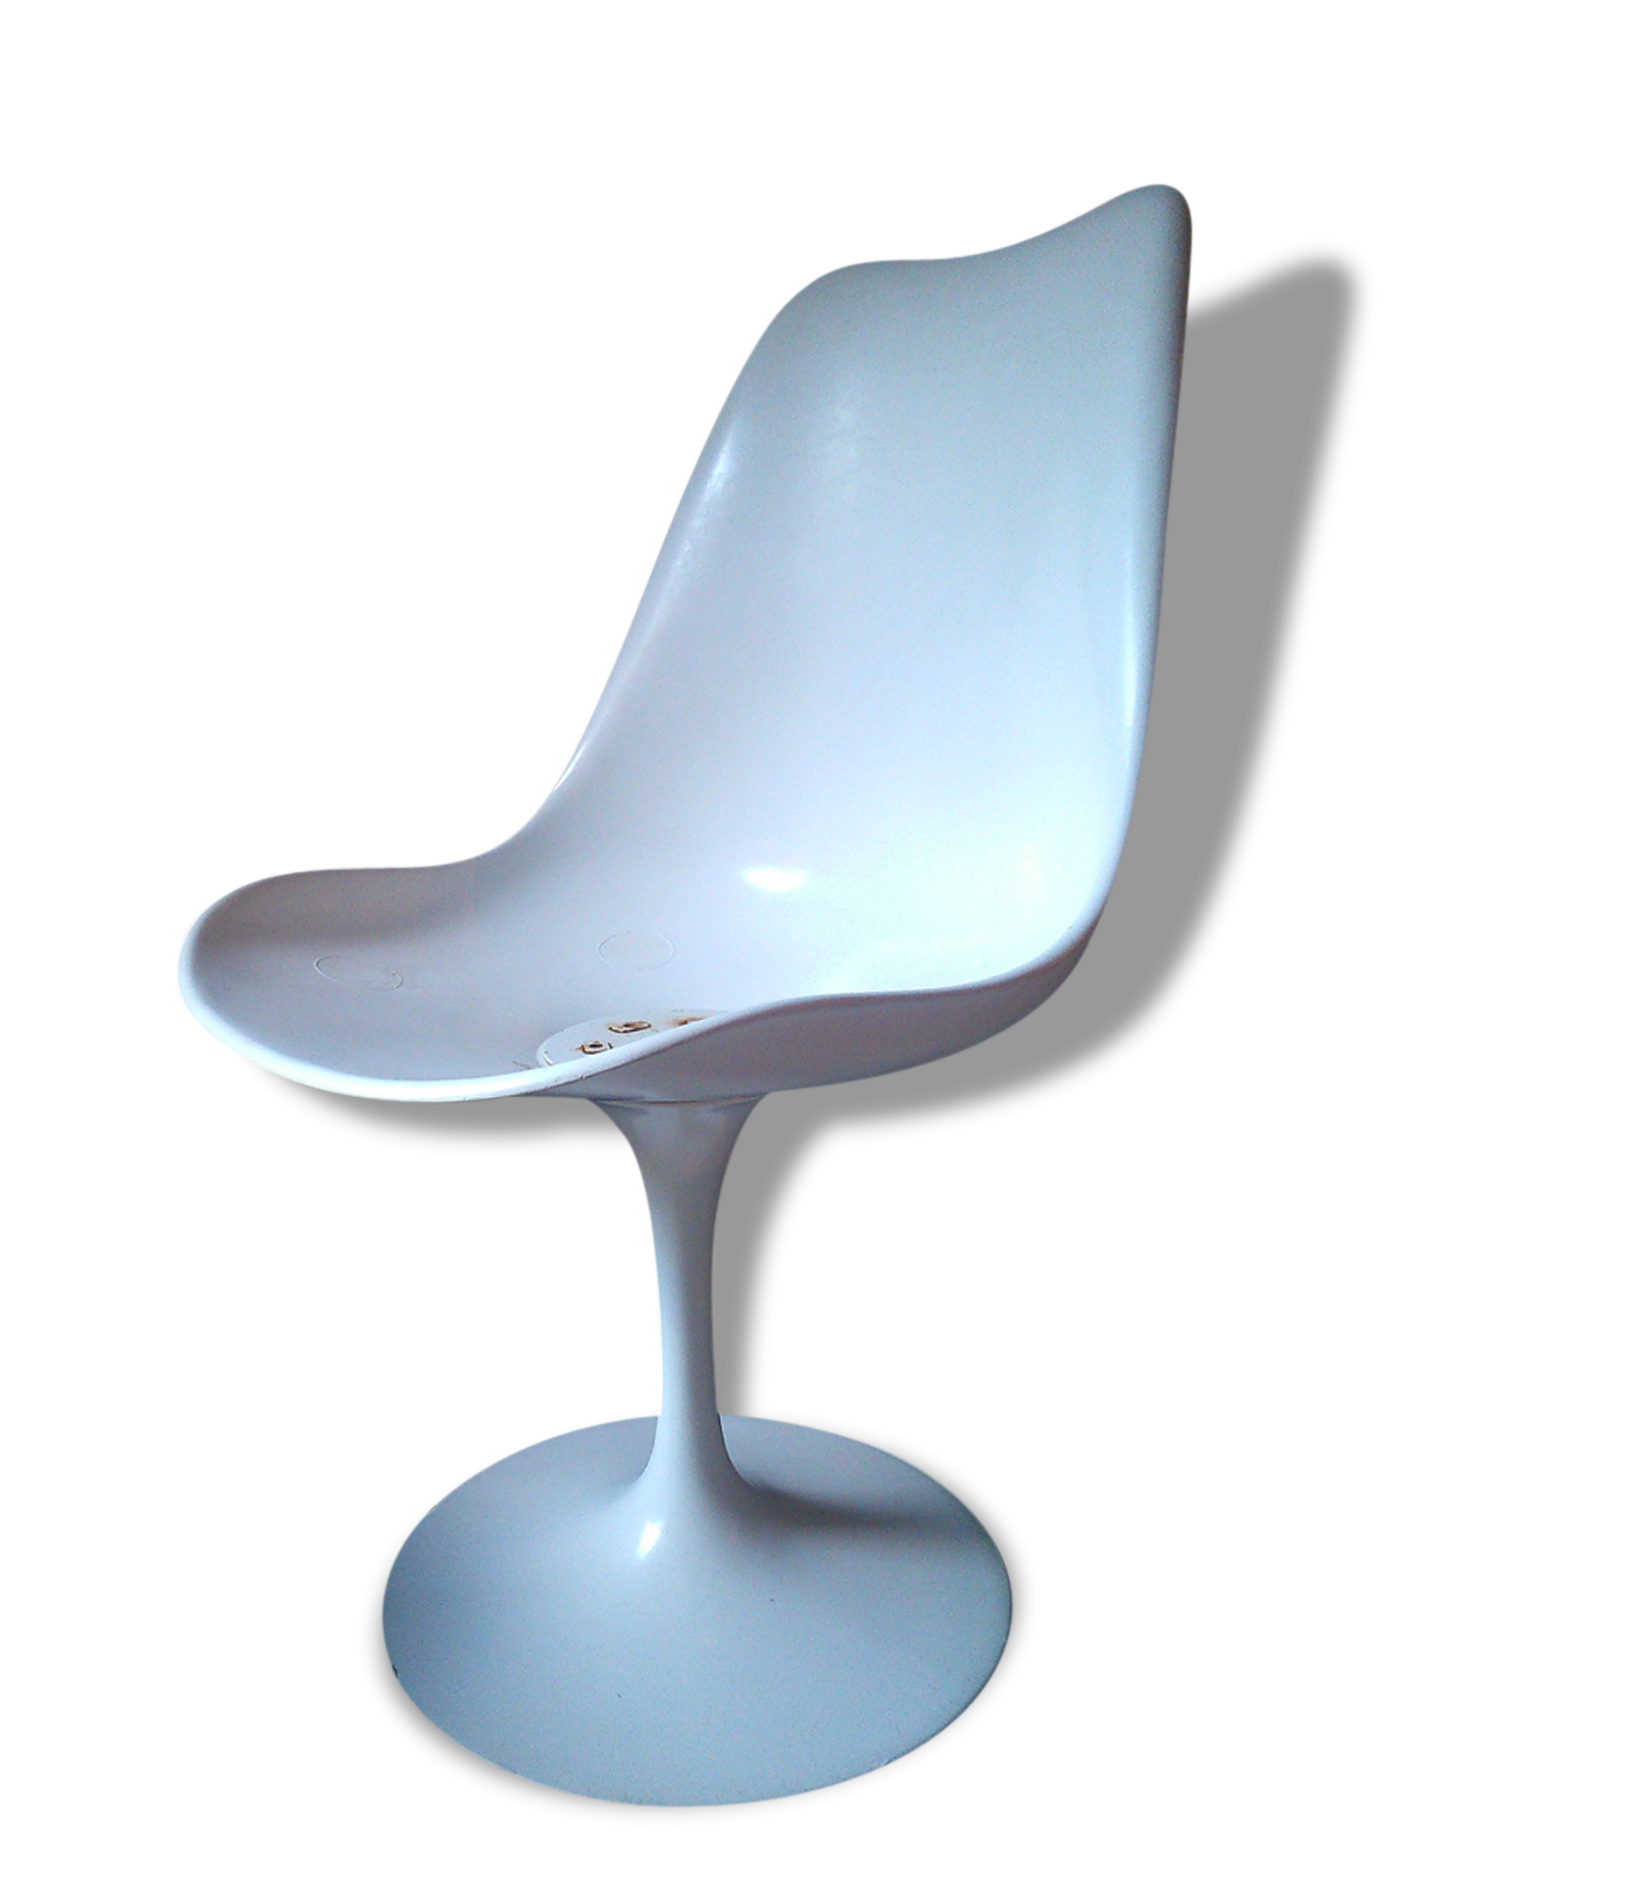 saarinen chaise awesome chaise tulip nouveau awesome chaise tulip saarinen ideas with saarinen. Black Bedroom Furniture Sets. Home Design Ideas